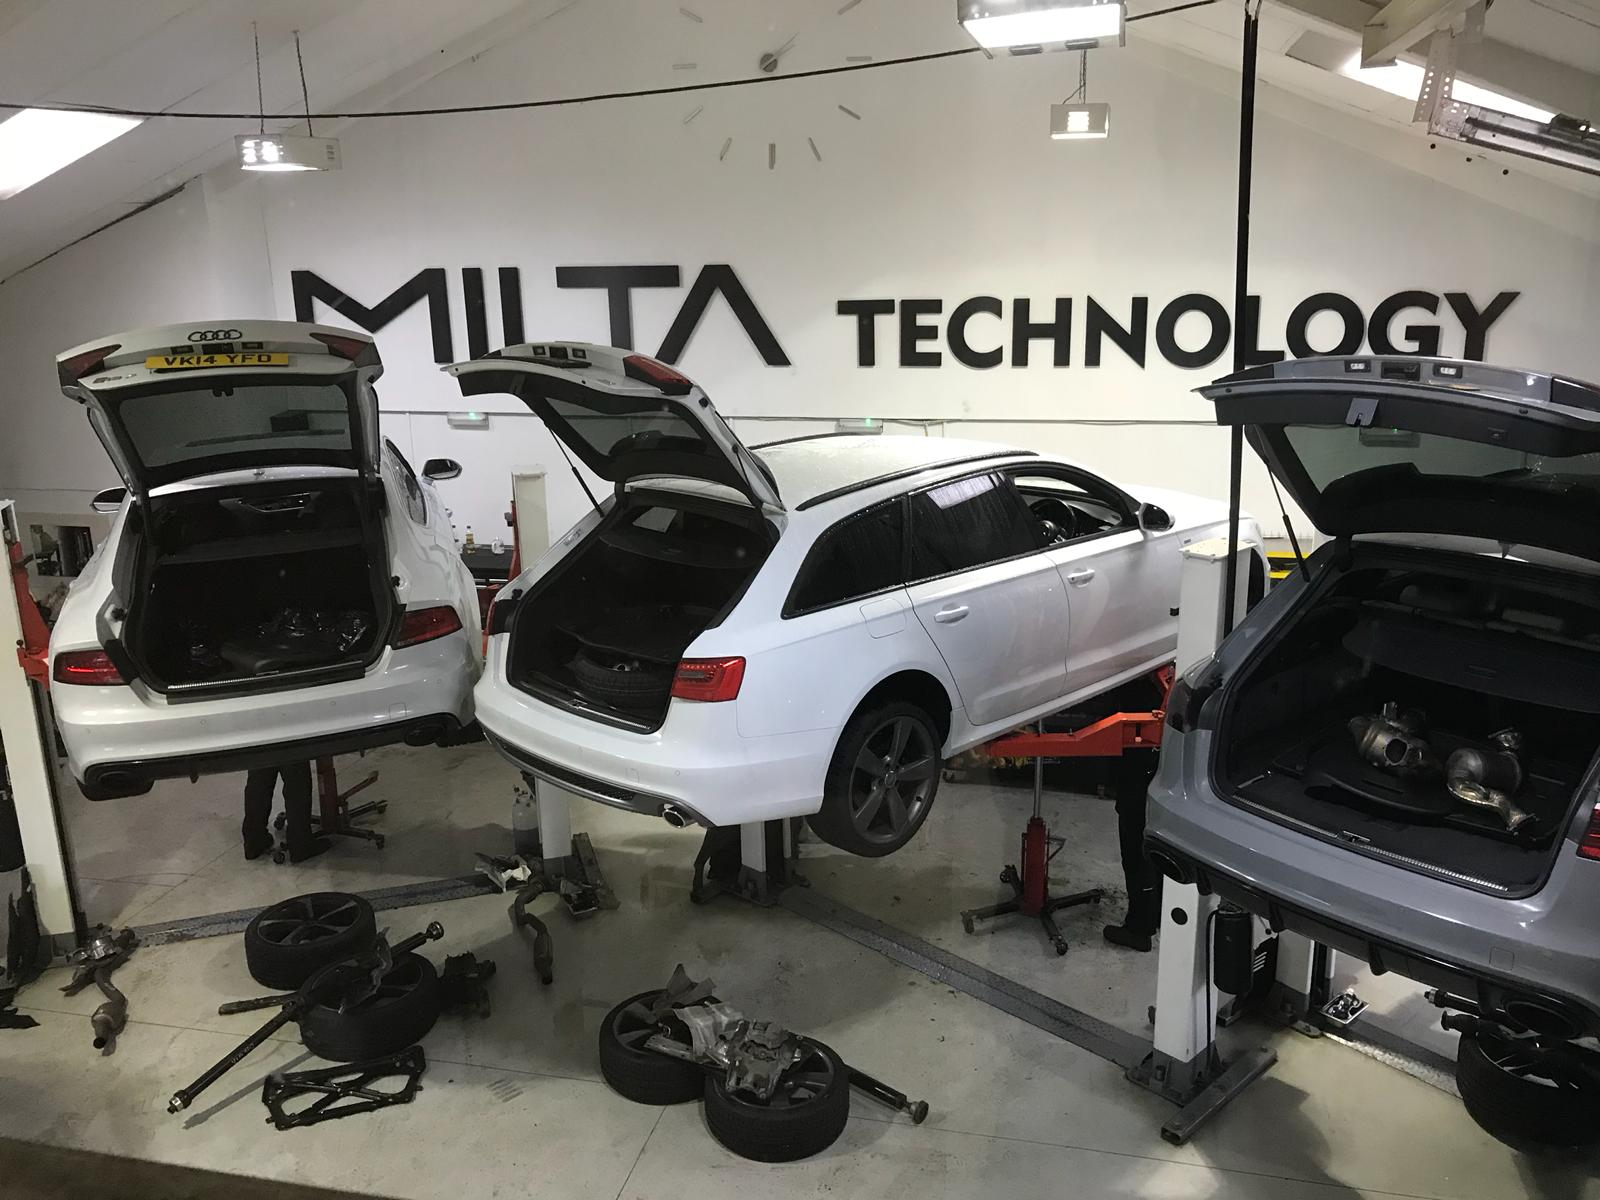 Milta Technology - service and automatic gearbox repair - replacement